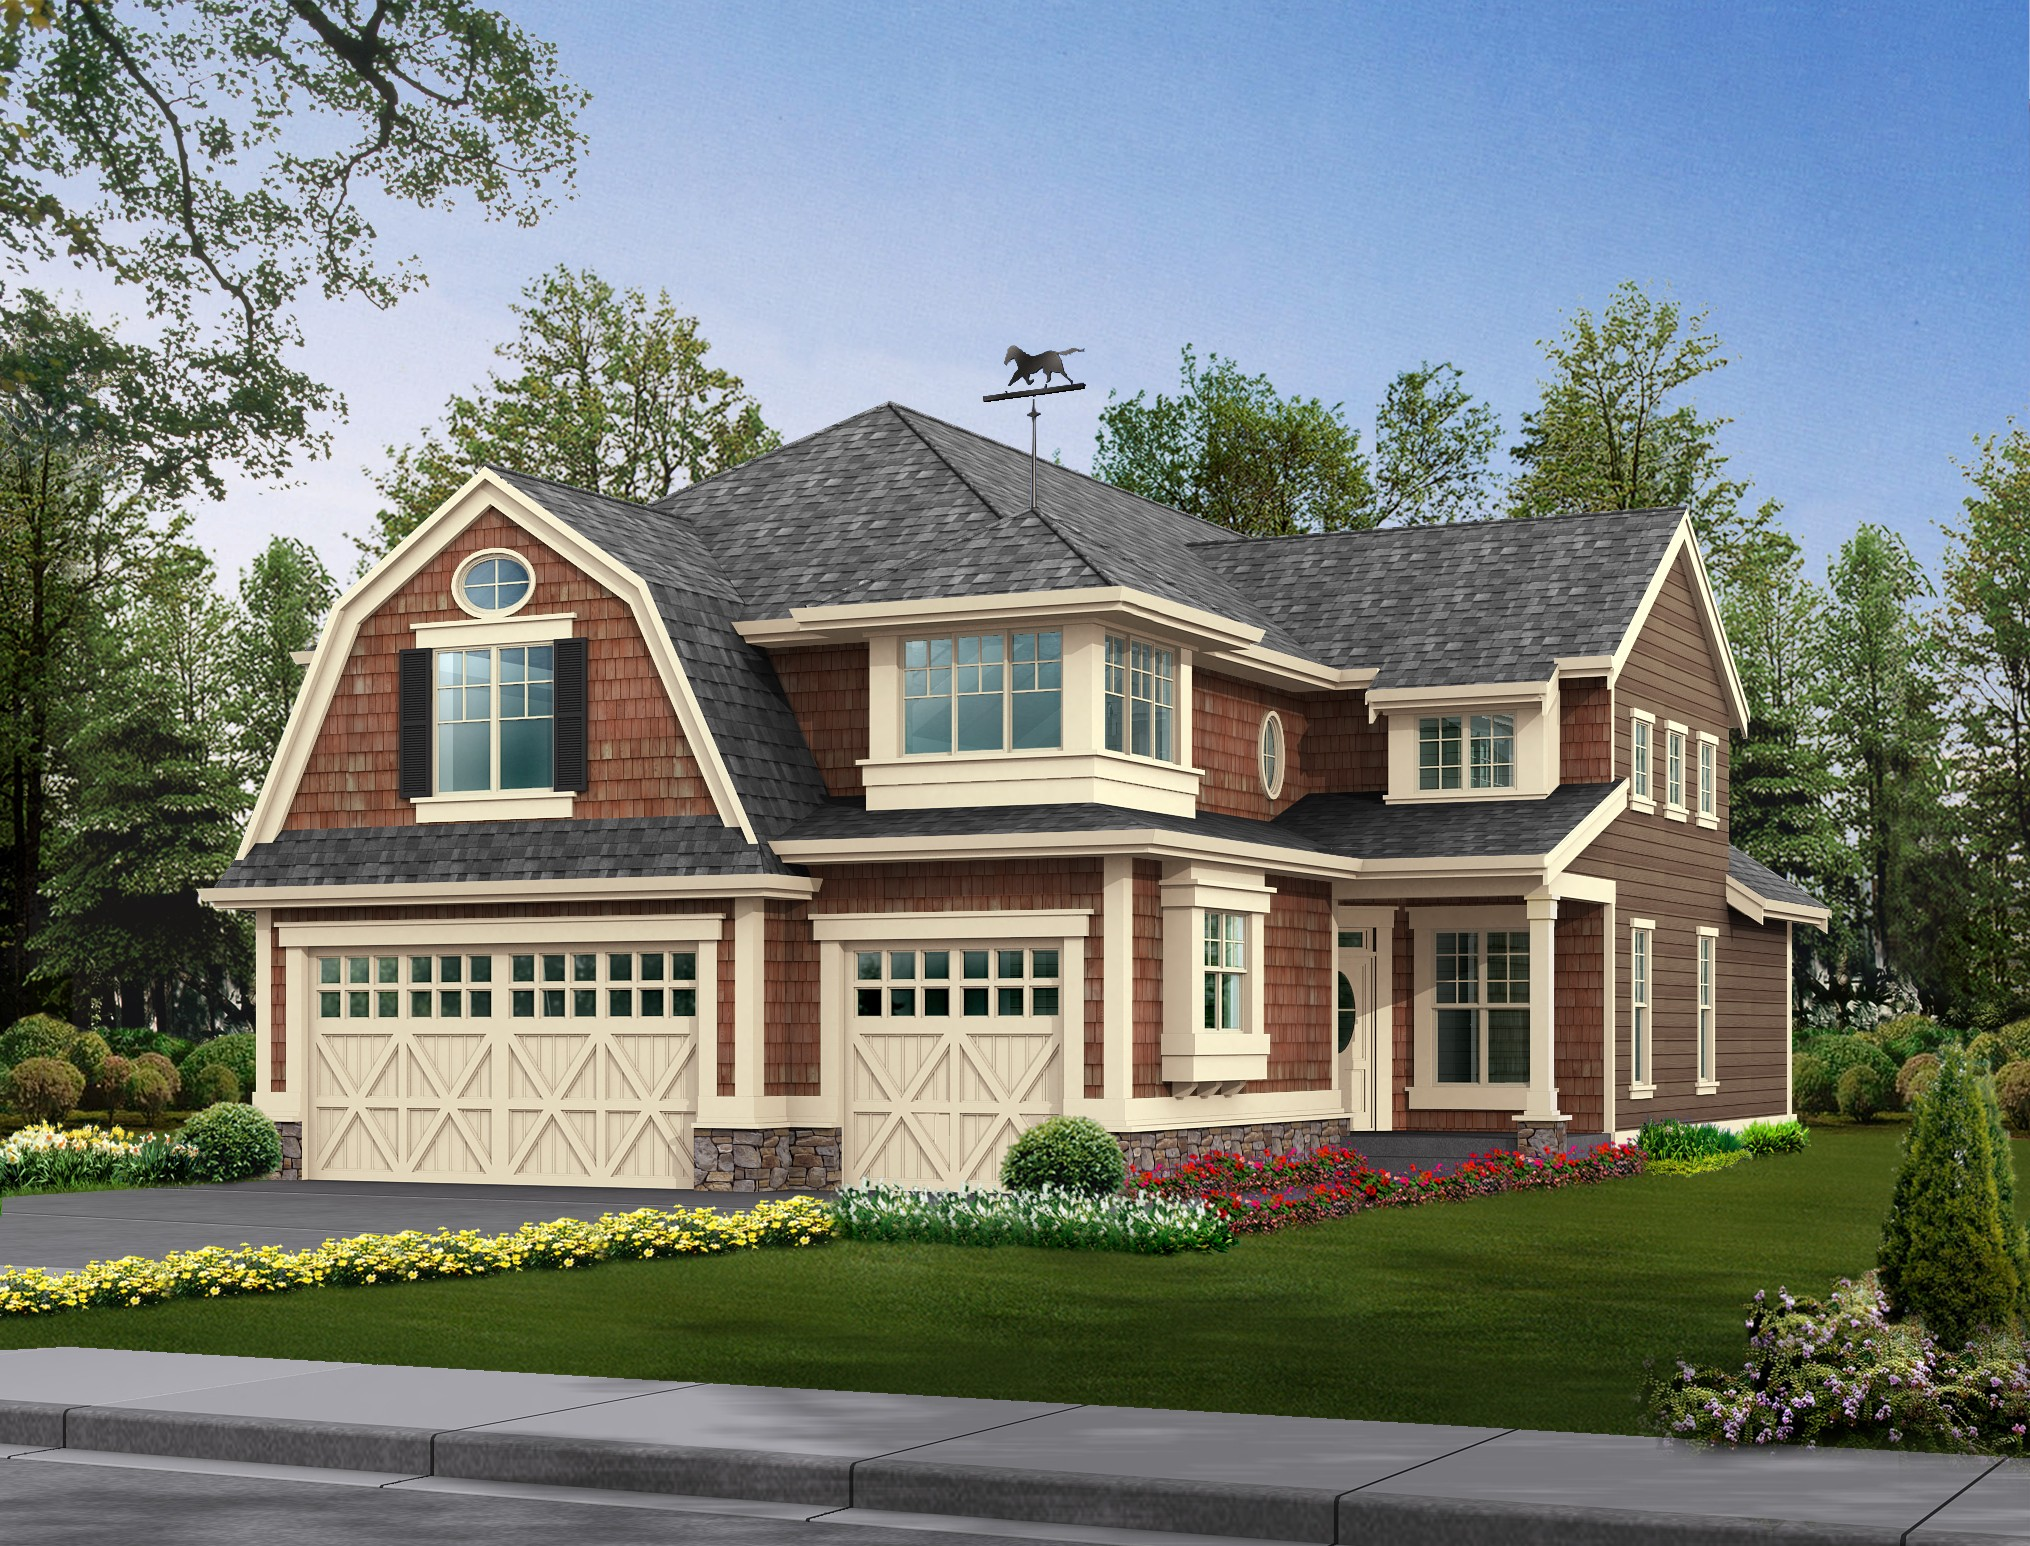 20 examples of homes with gambrel roofs photo examples for Gambrel roof house plans